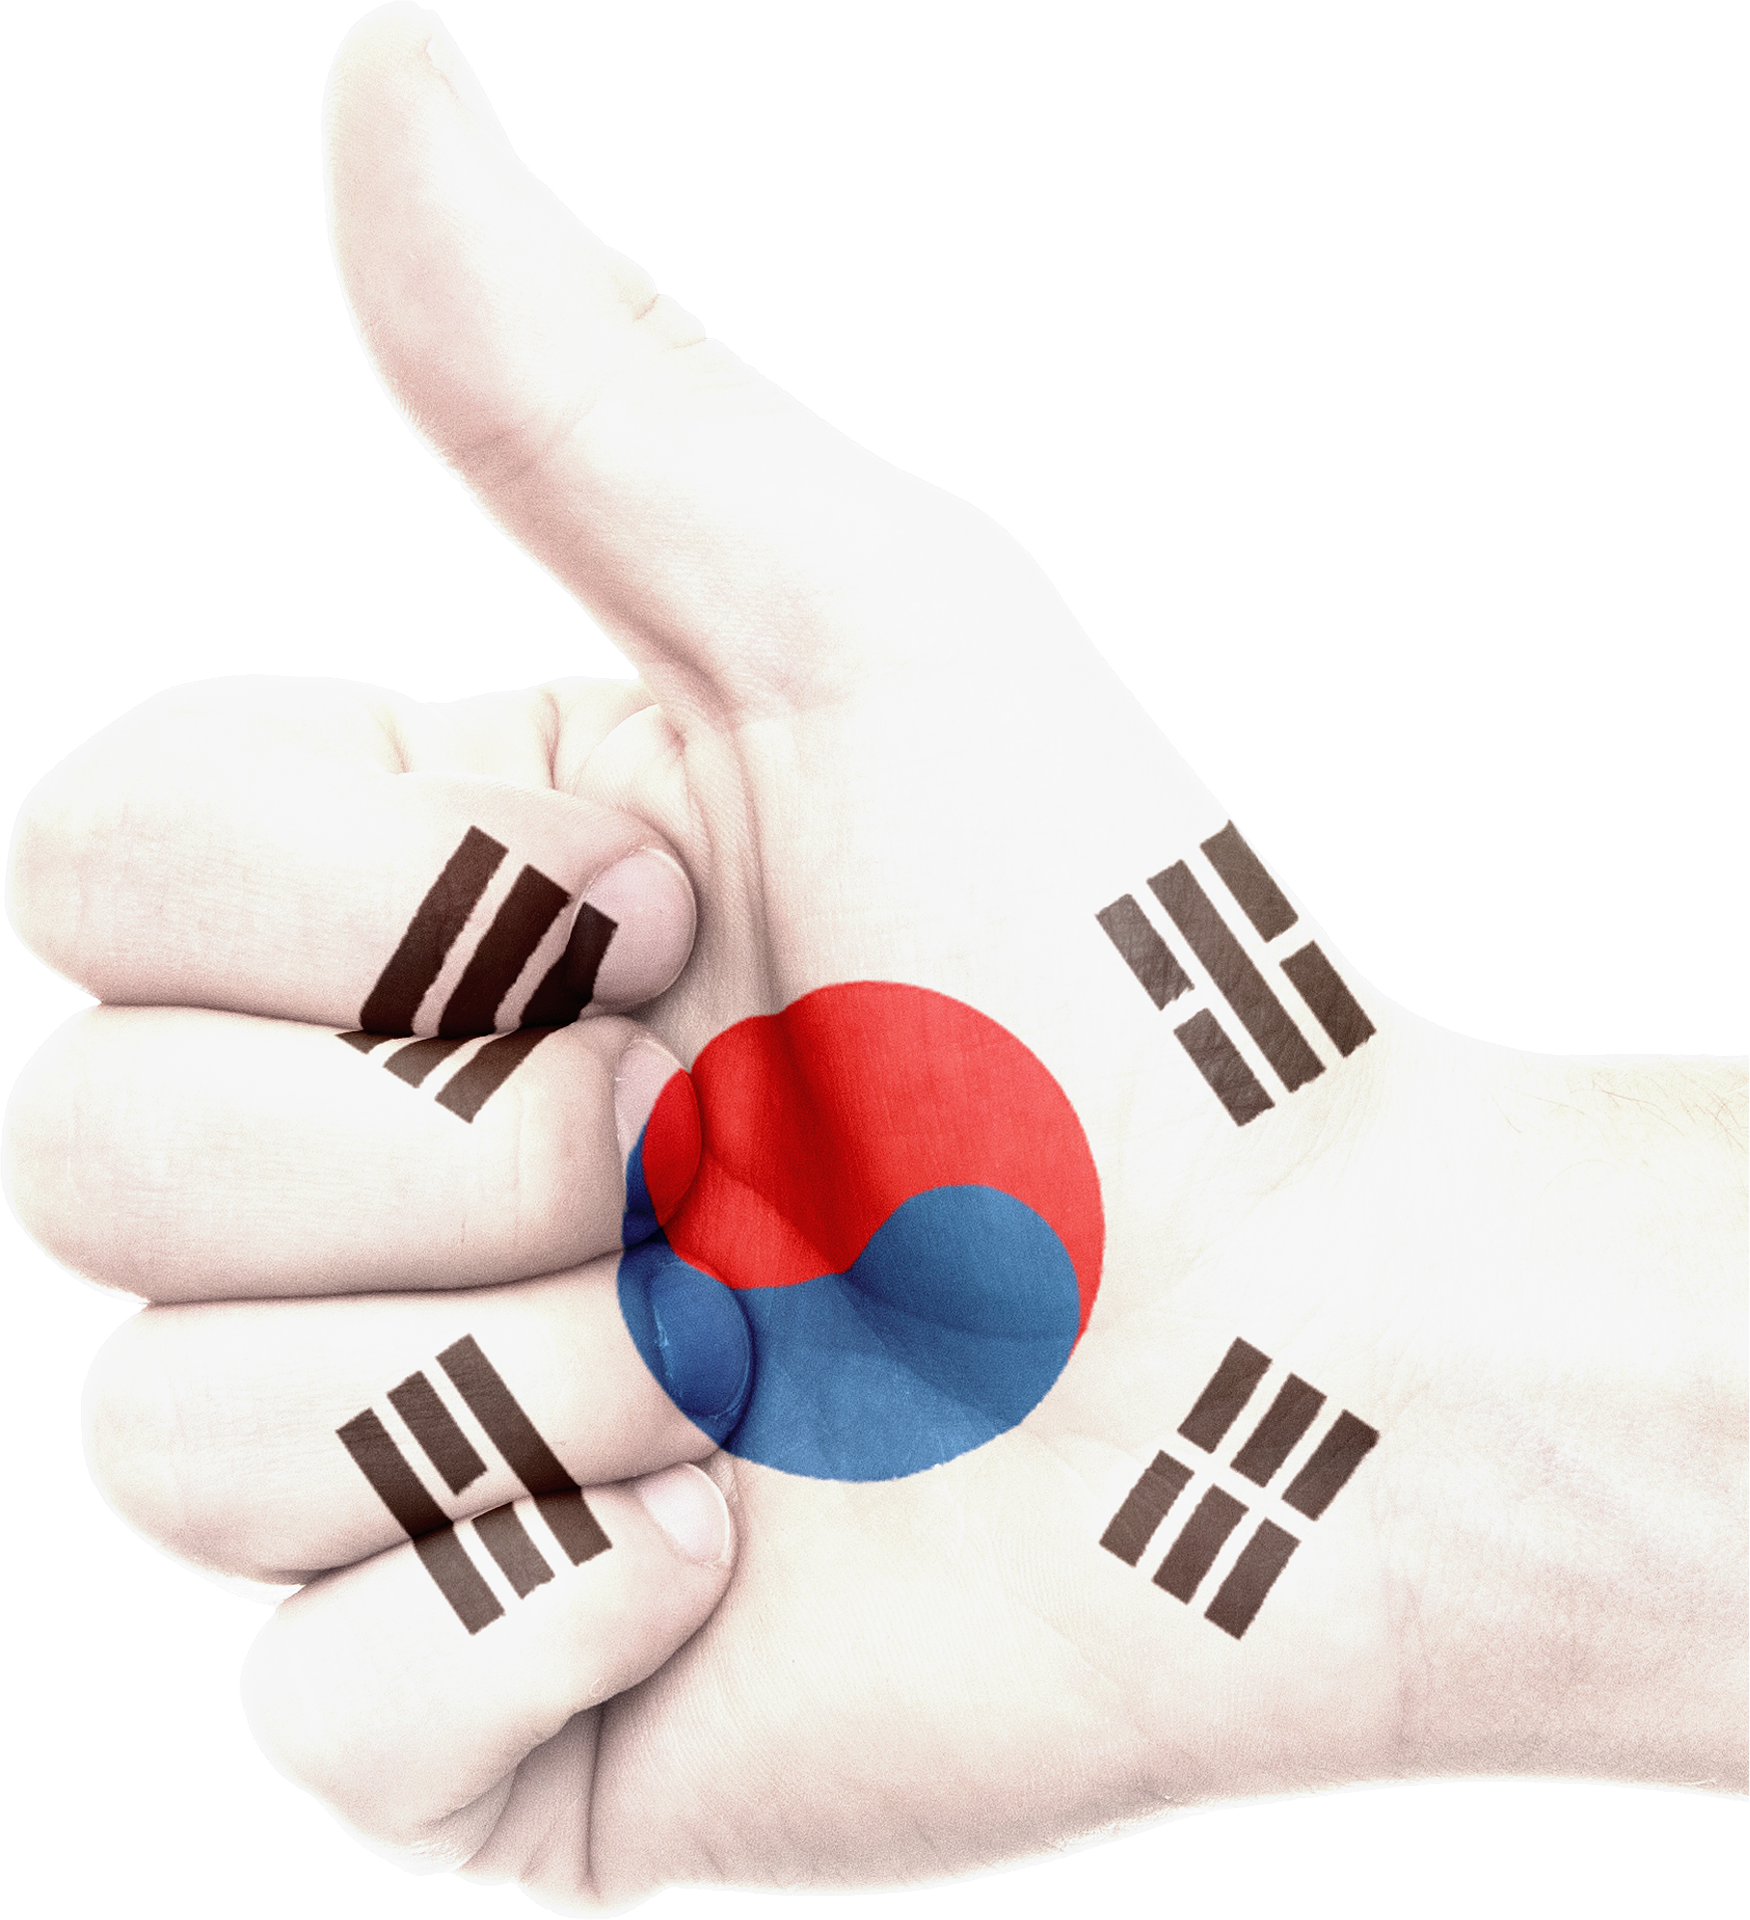 South Korea (Source: Pixabay.com)